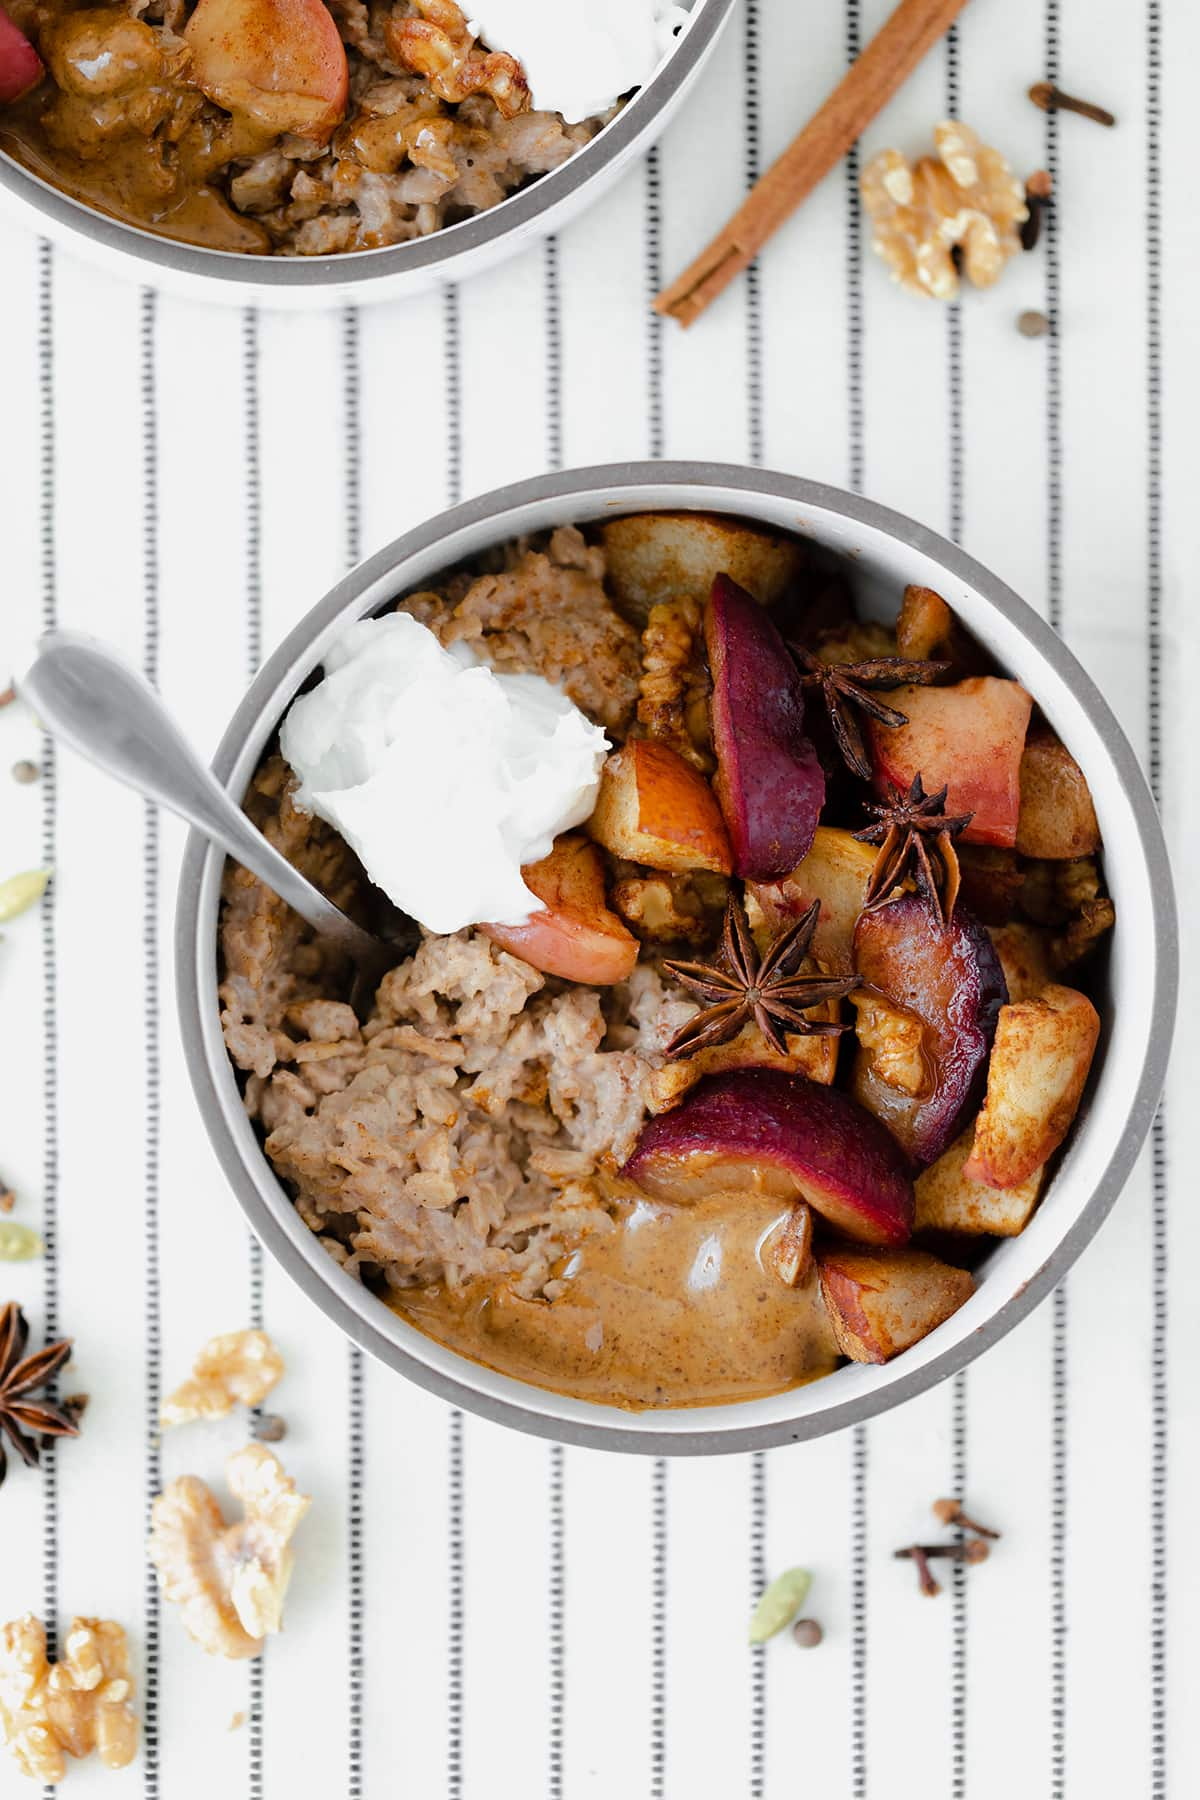 Winter Spiced Oatmeal with Roasted Fruit on a white tablecloth with black stripes.